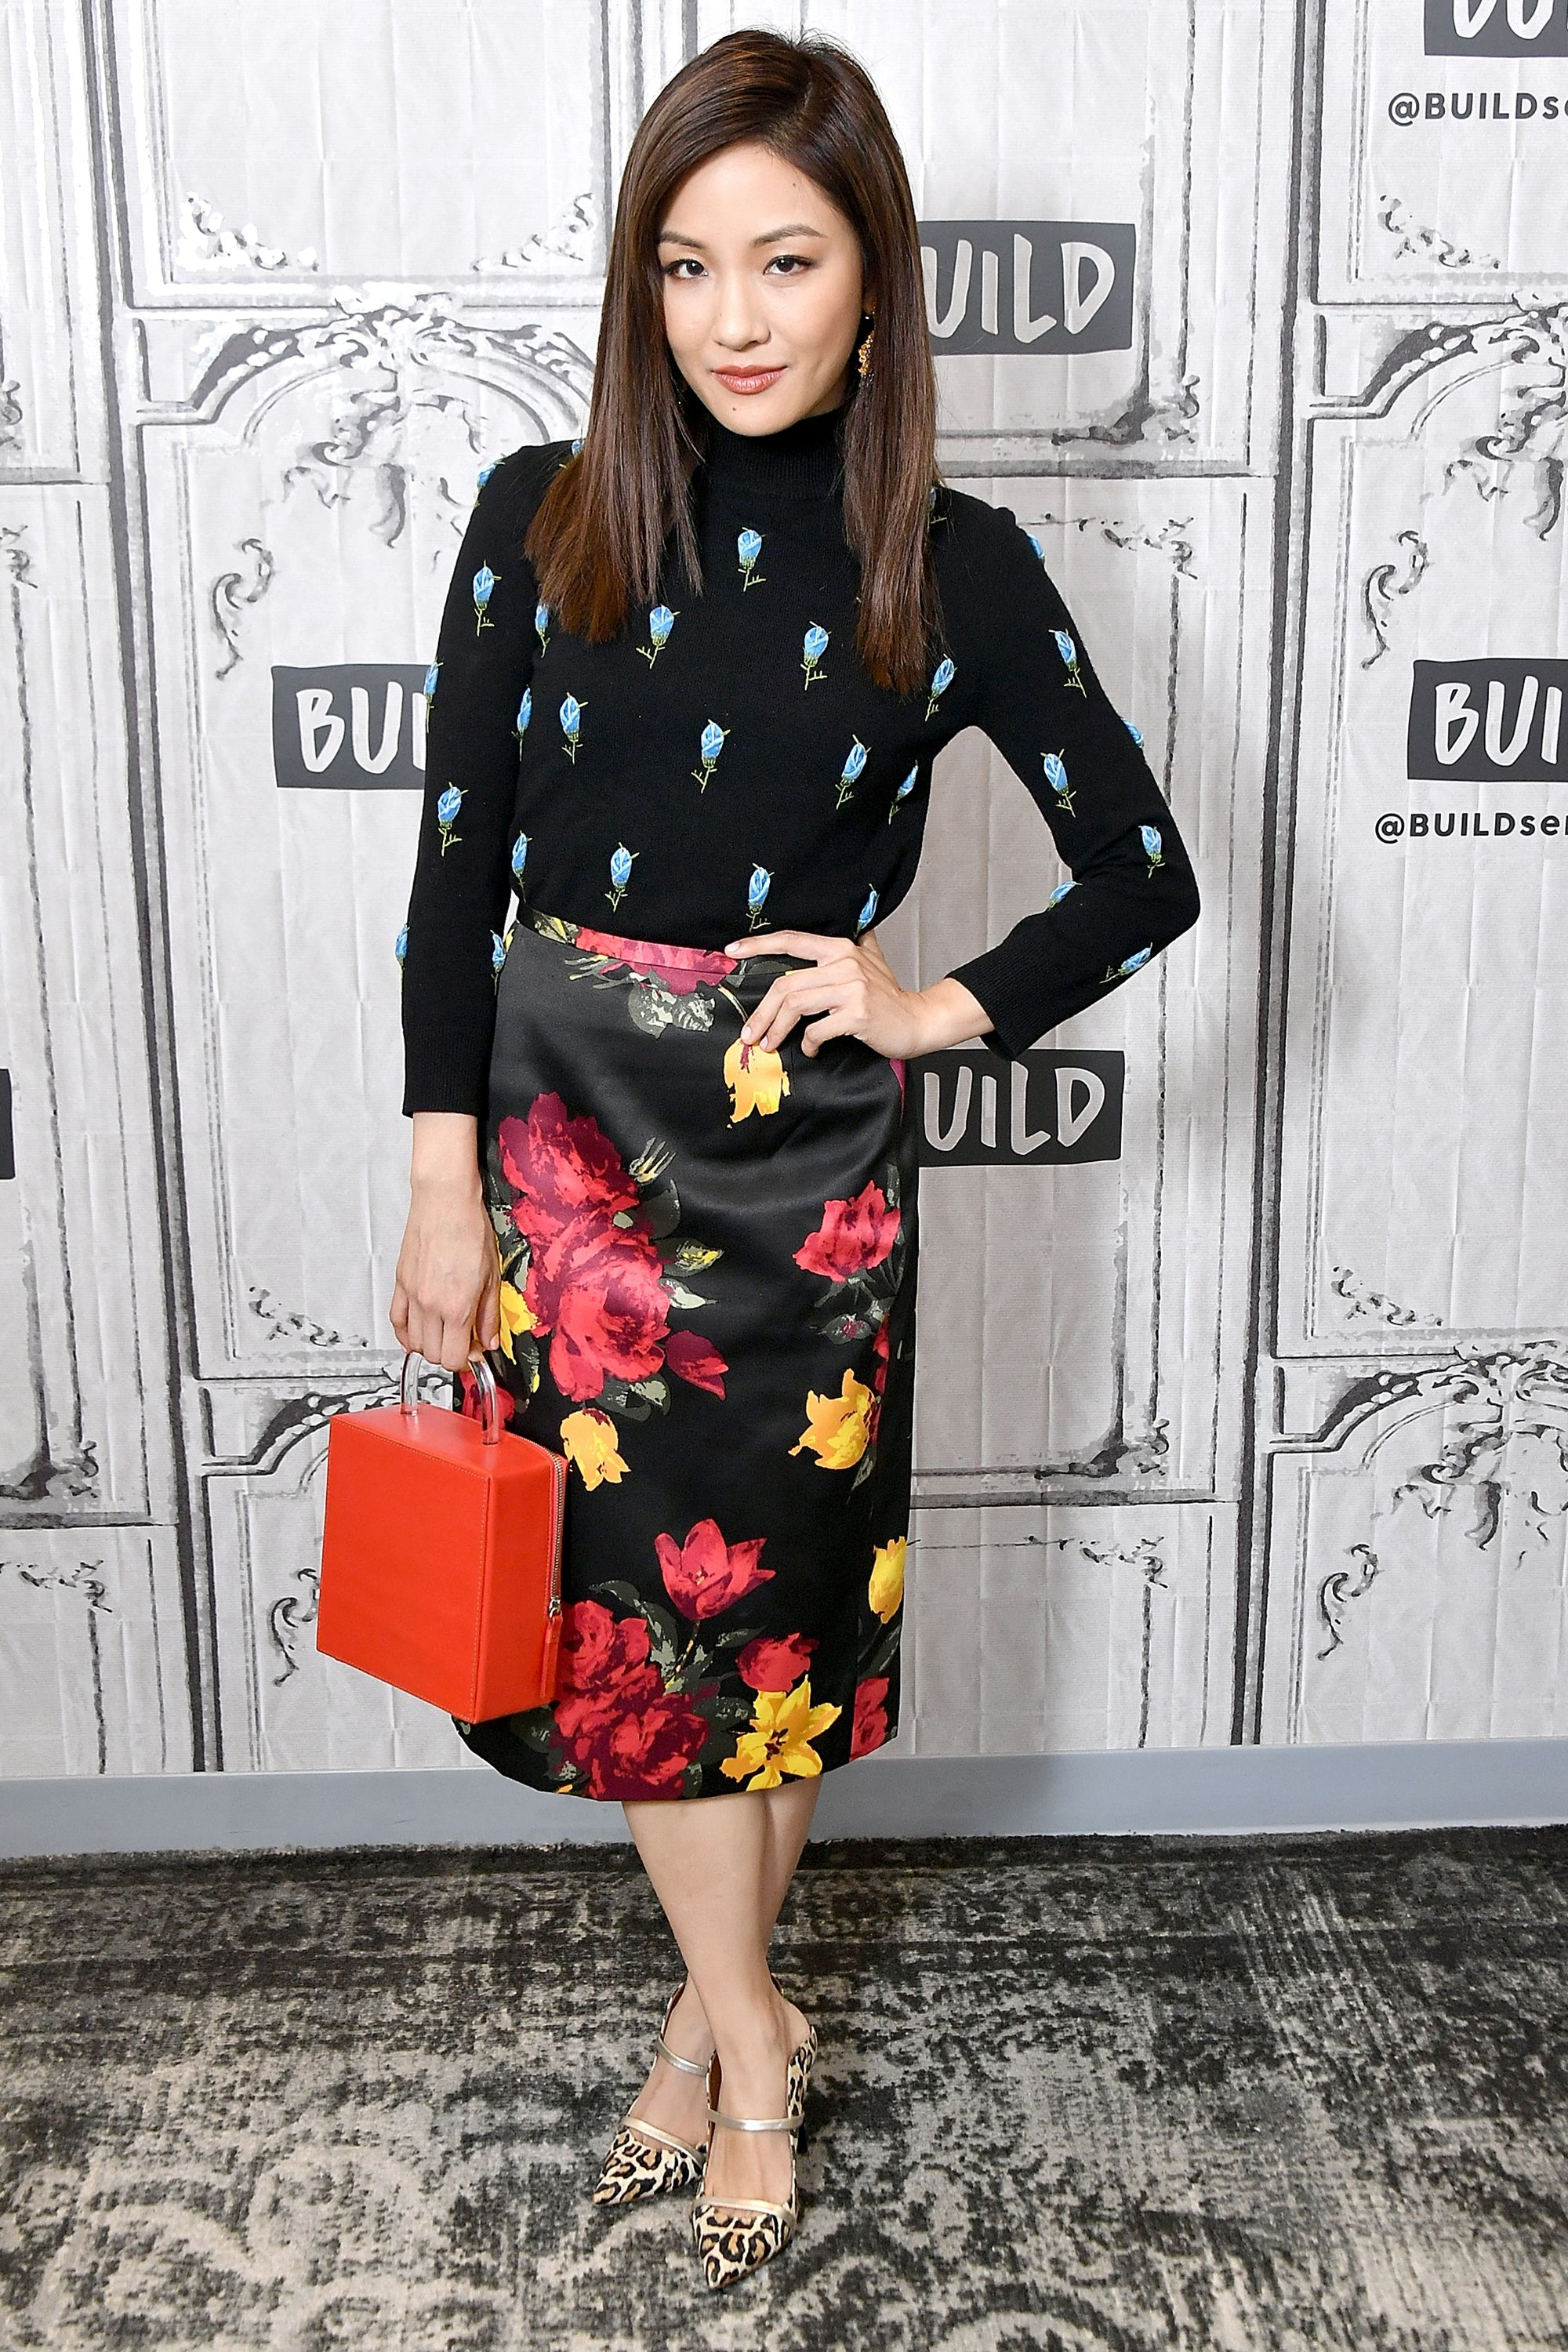 fdb0ae0c3 Celebrity Style and Fashion Tips - Today's Style Secret for Harper's BAZAAR